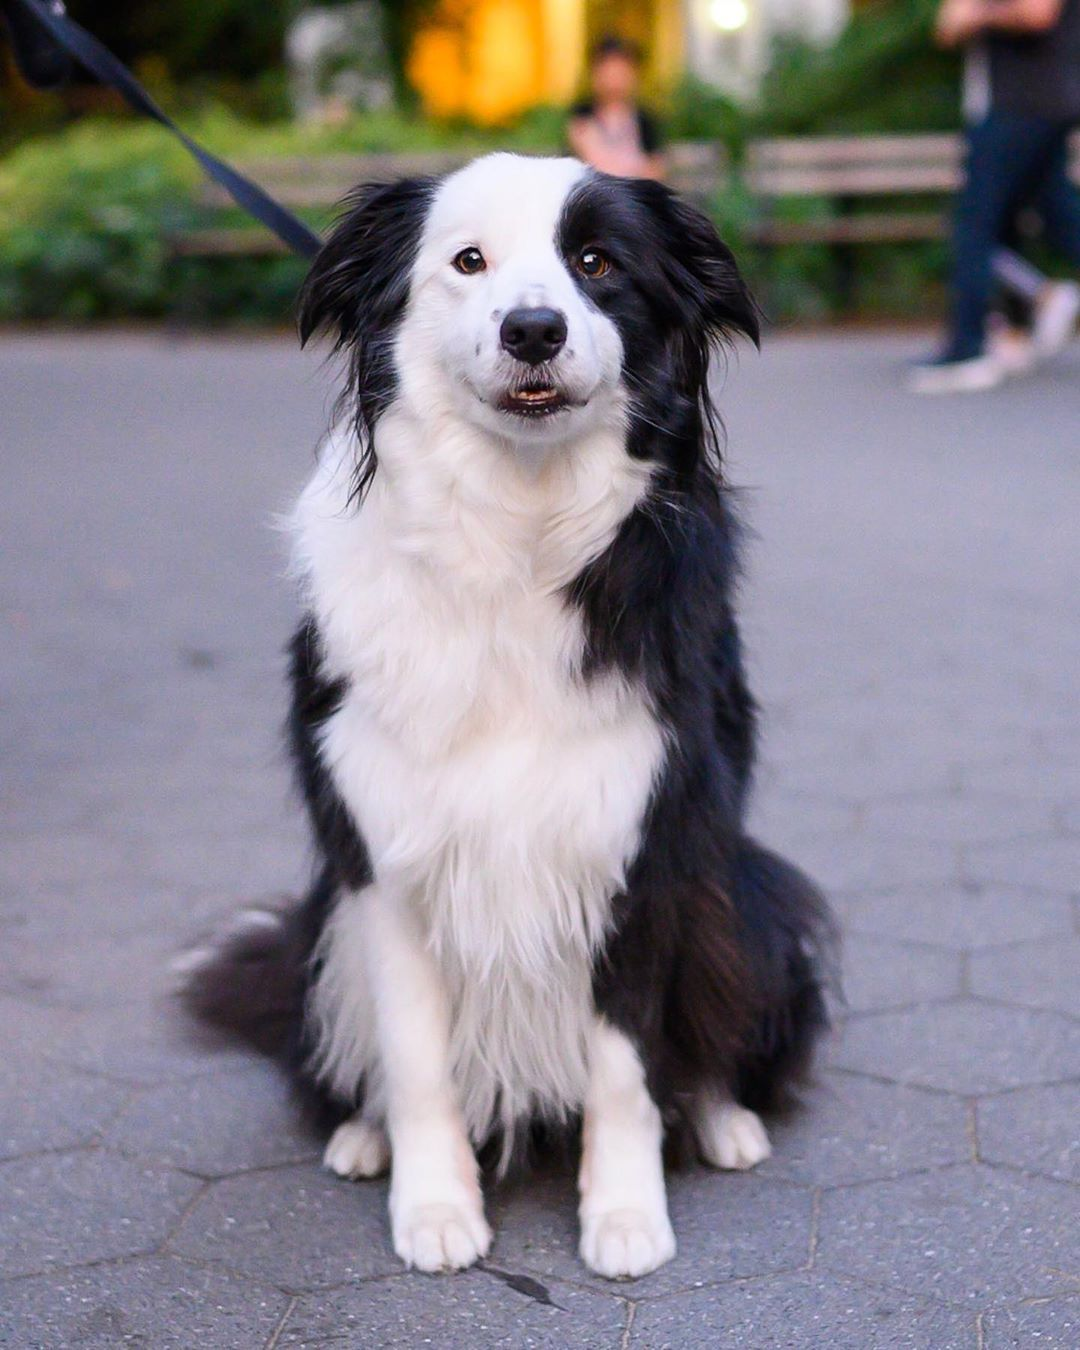 Panda Border Collie 3 Y O Washington Square Park New York Ny She S Very Food Focused And Doesn T Like Skat Border Collie Washington Square Park Collie